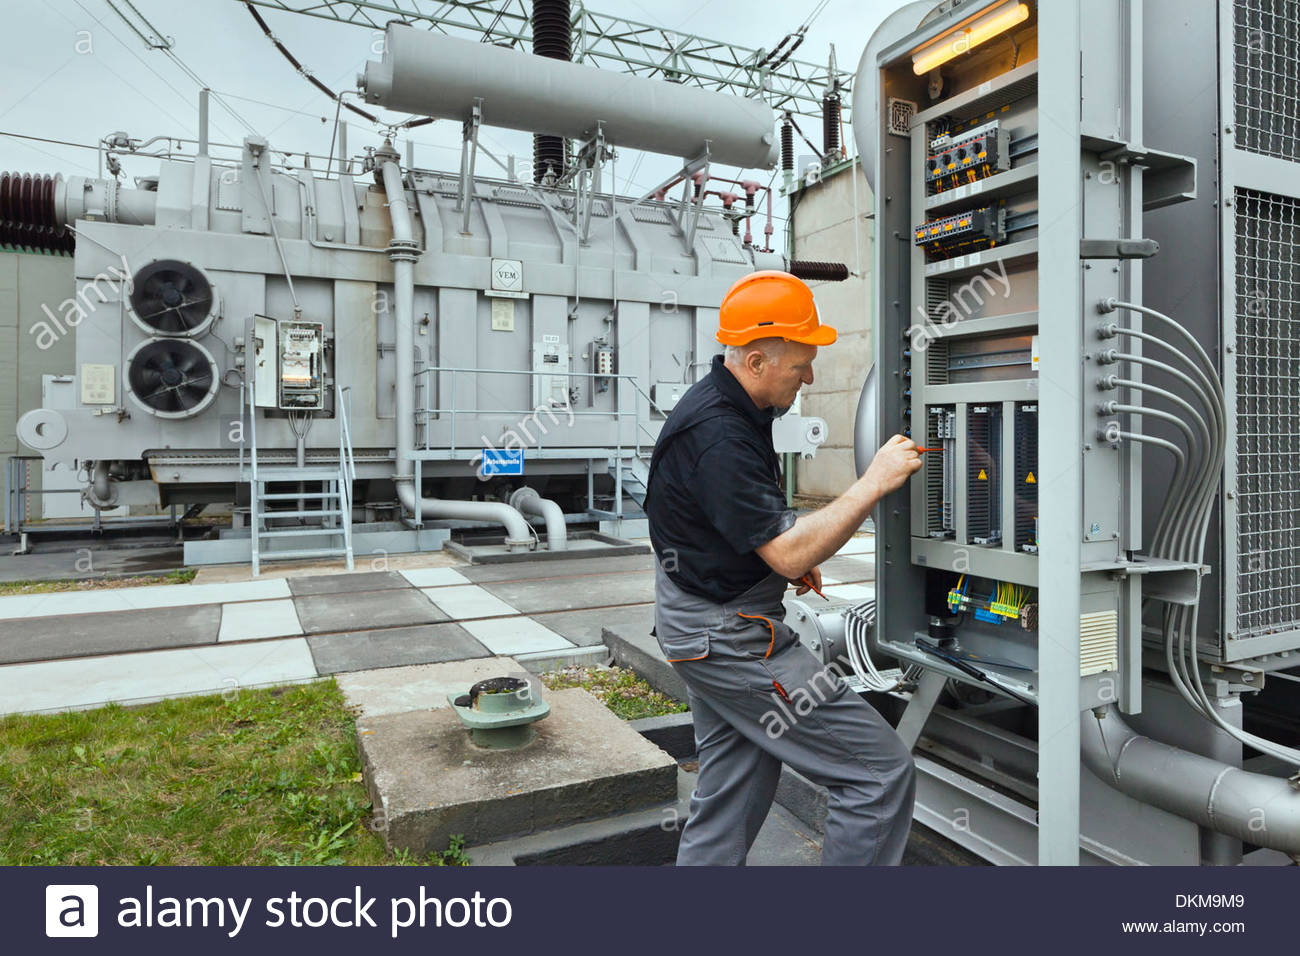 Maintenance work and testing of power transformers in an electrical ...